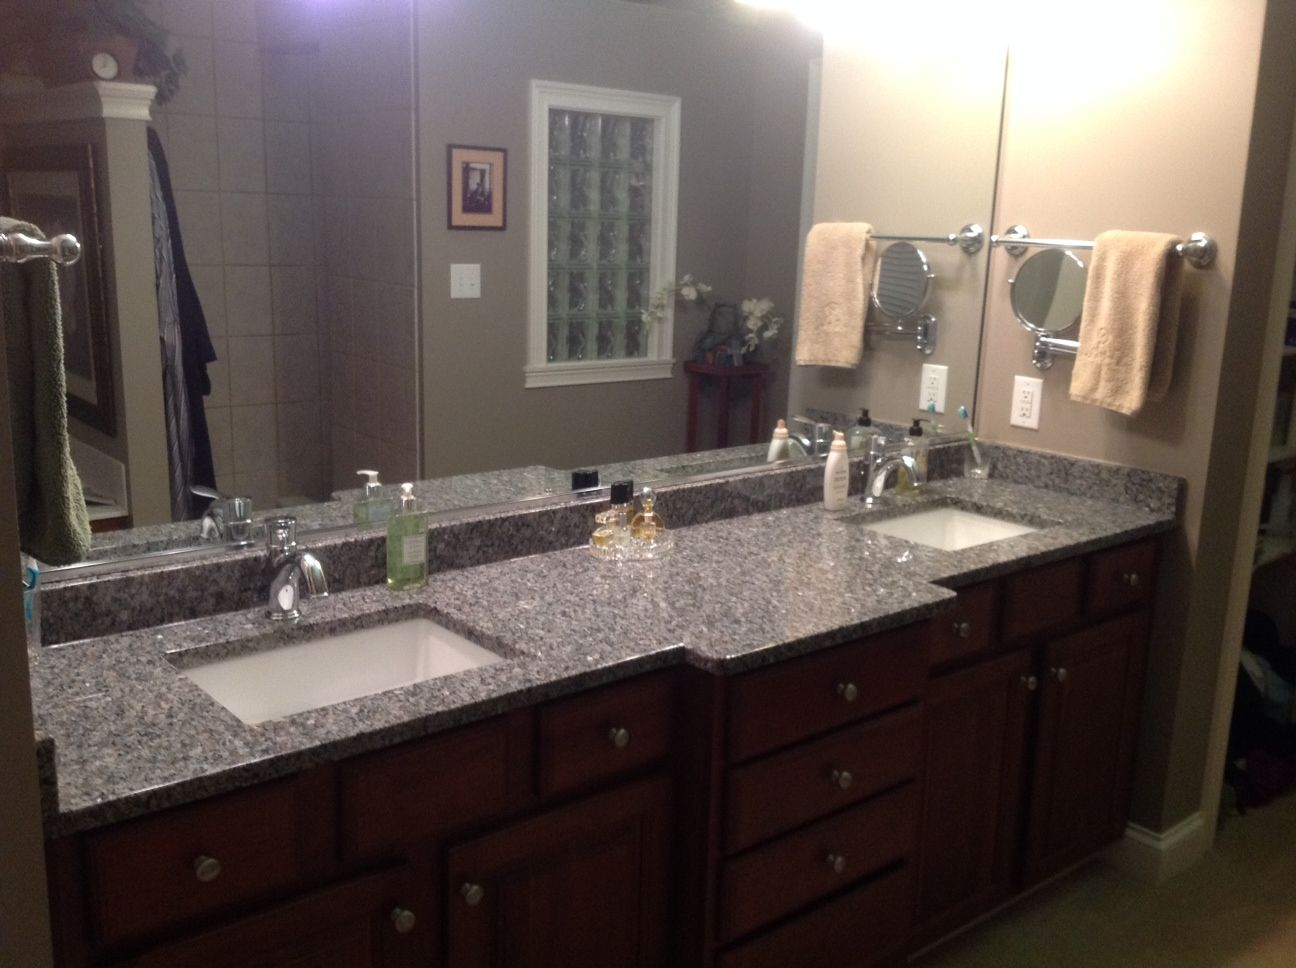 New Caledonia Granite Bathroom Vanity Natural Stone From - Install bathroom vanity